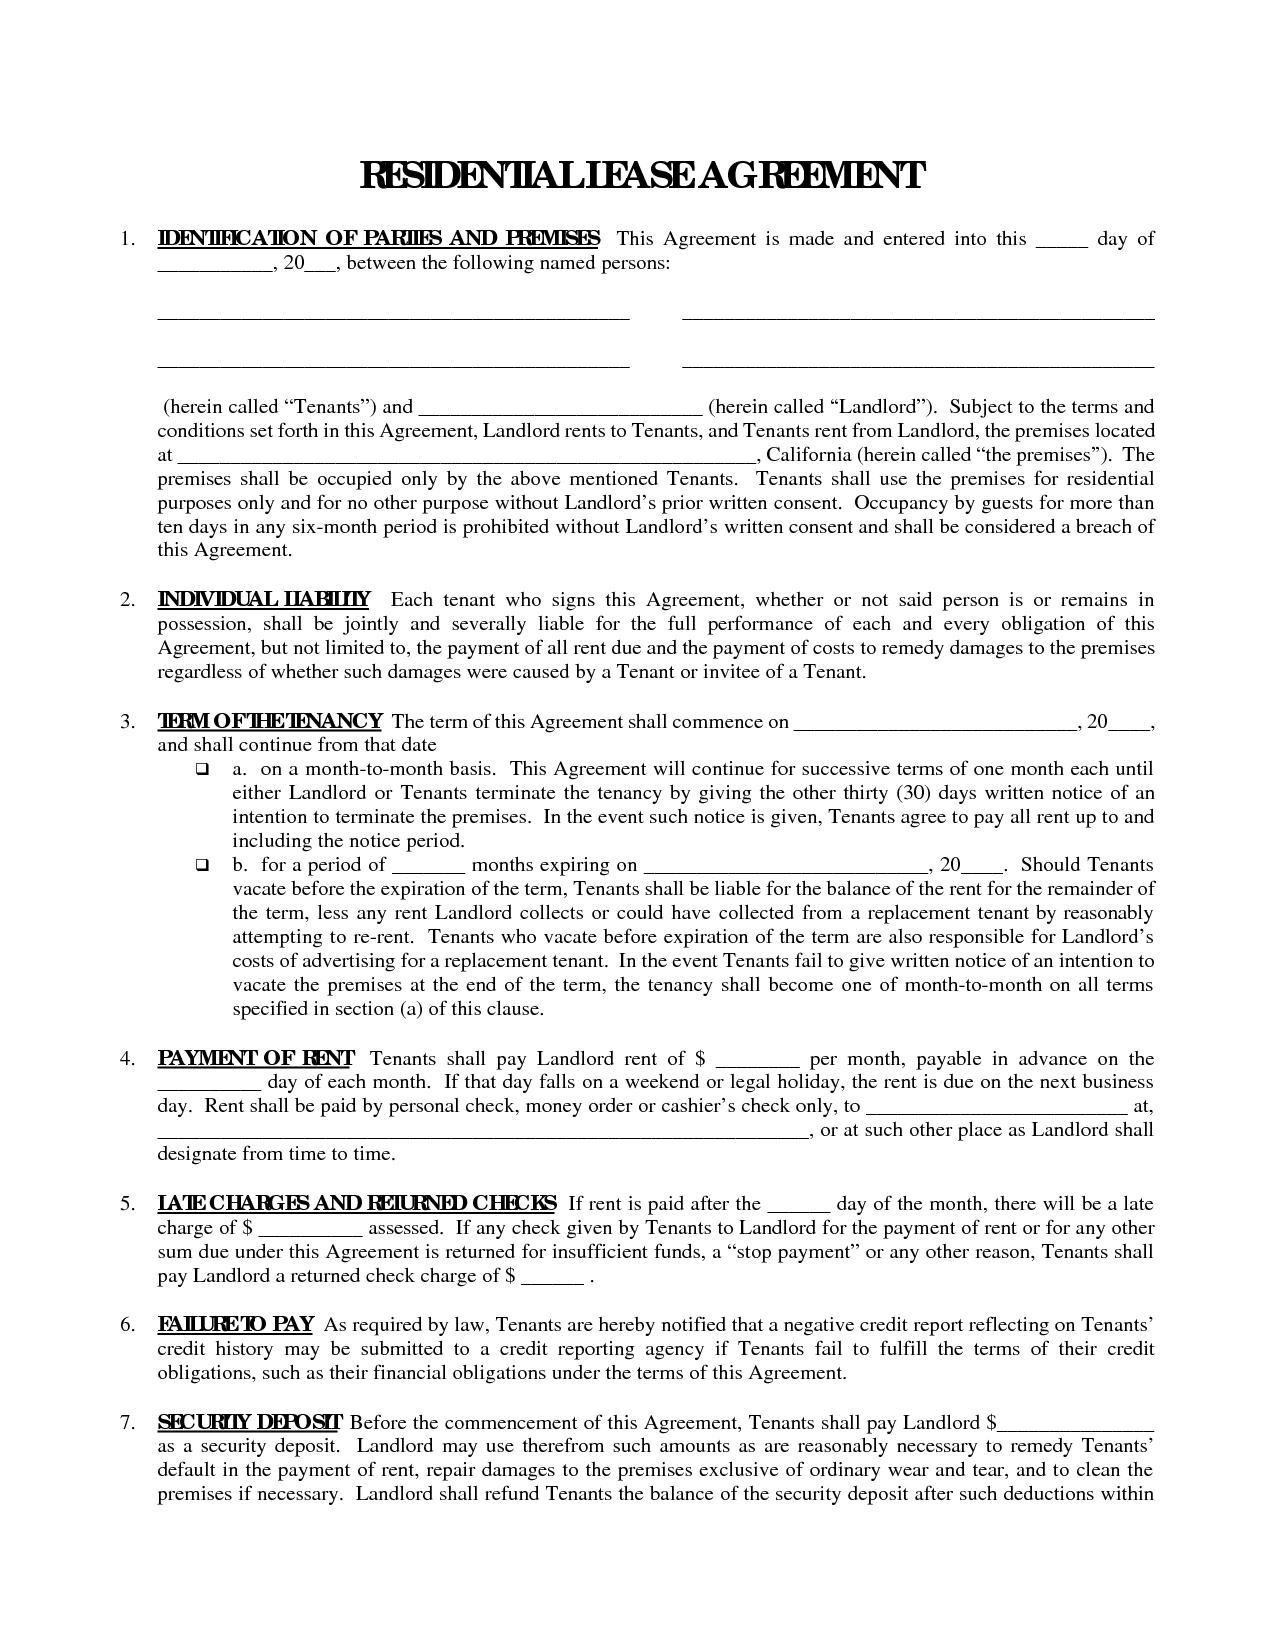 Printable Residential Free House Lease Agreement | Residential Lease - Free Printable House Rental Application Form